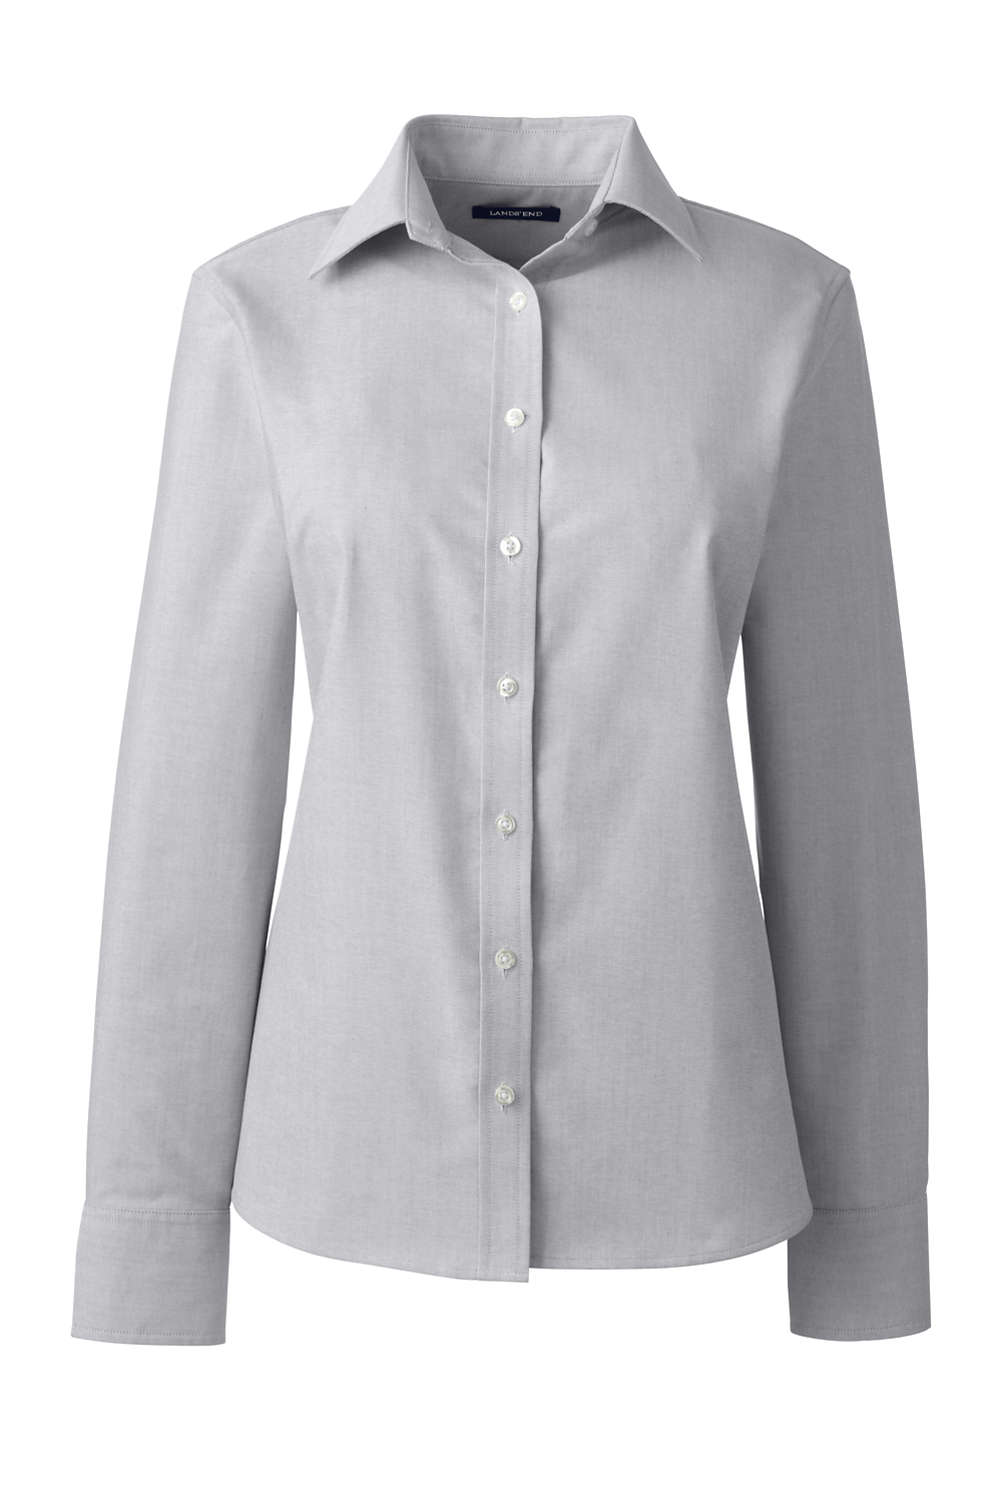 Womens Oxford Shirt From Lands End